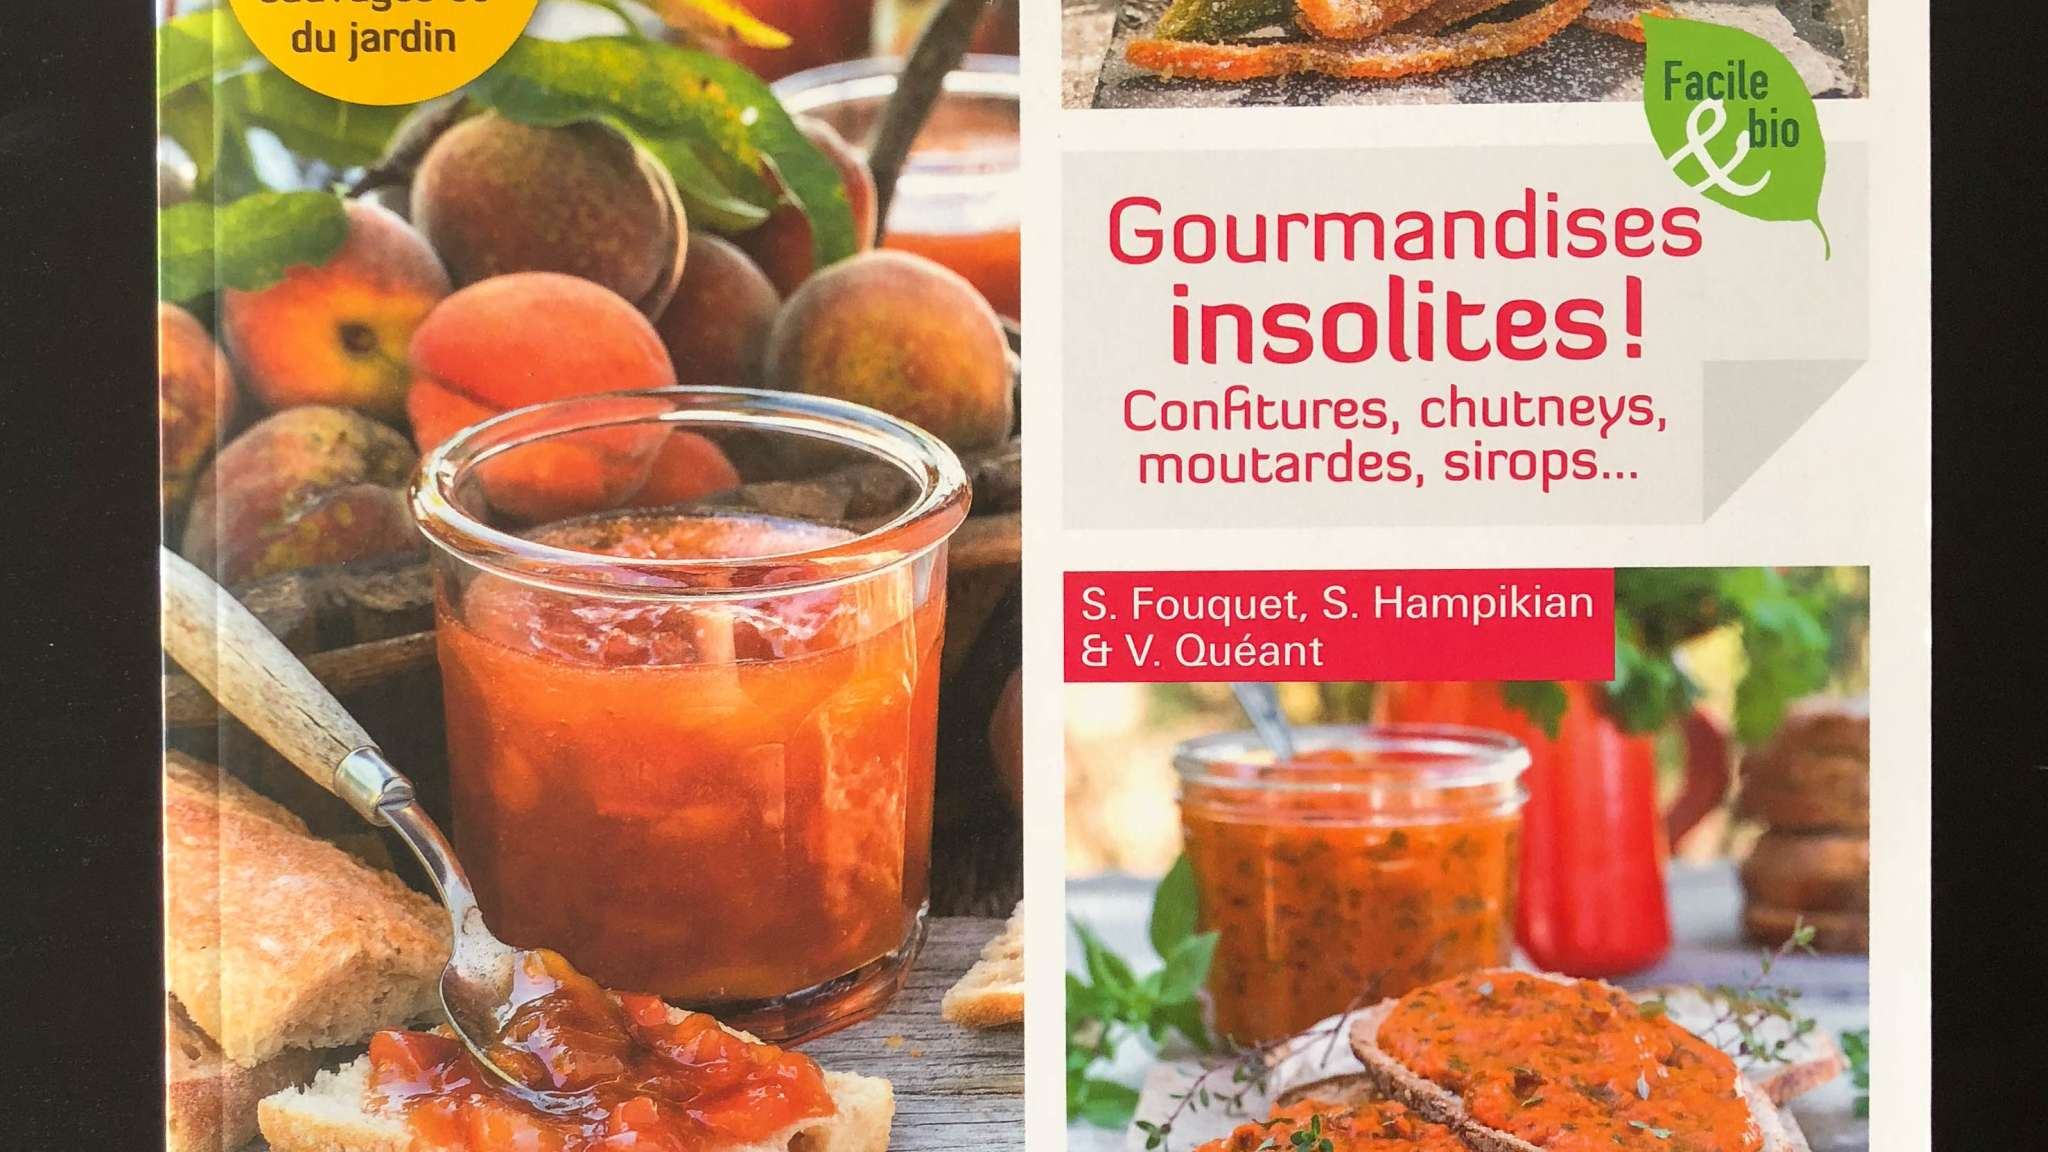 Gourmandises insolites ! Confitures, chutneys, moutardes, sirops...